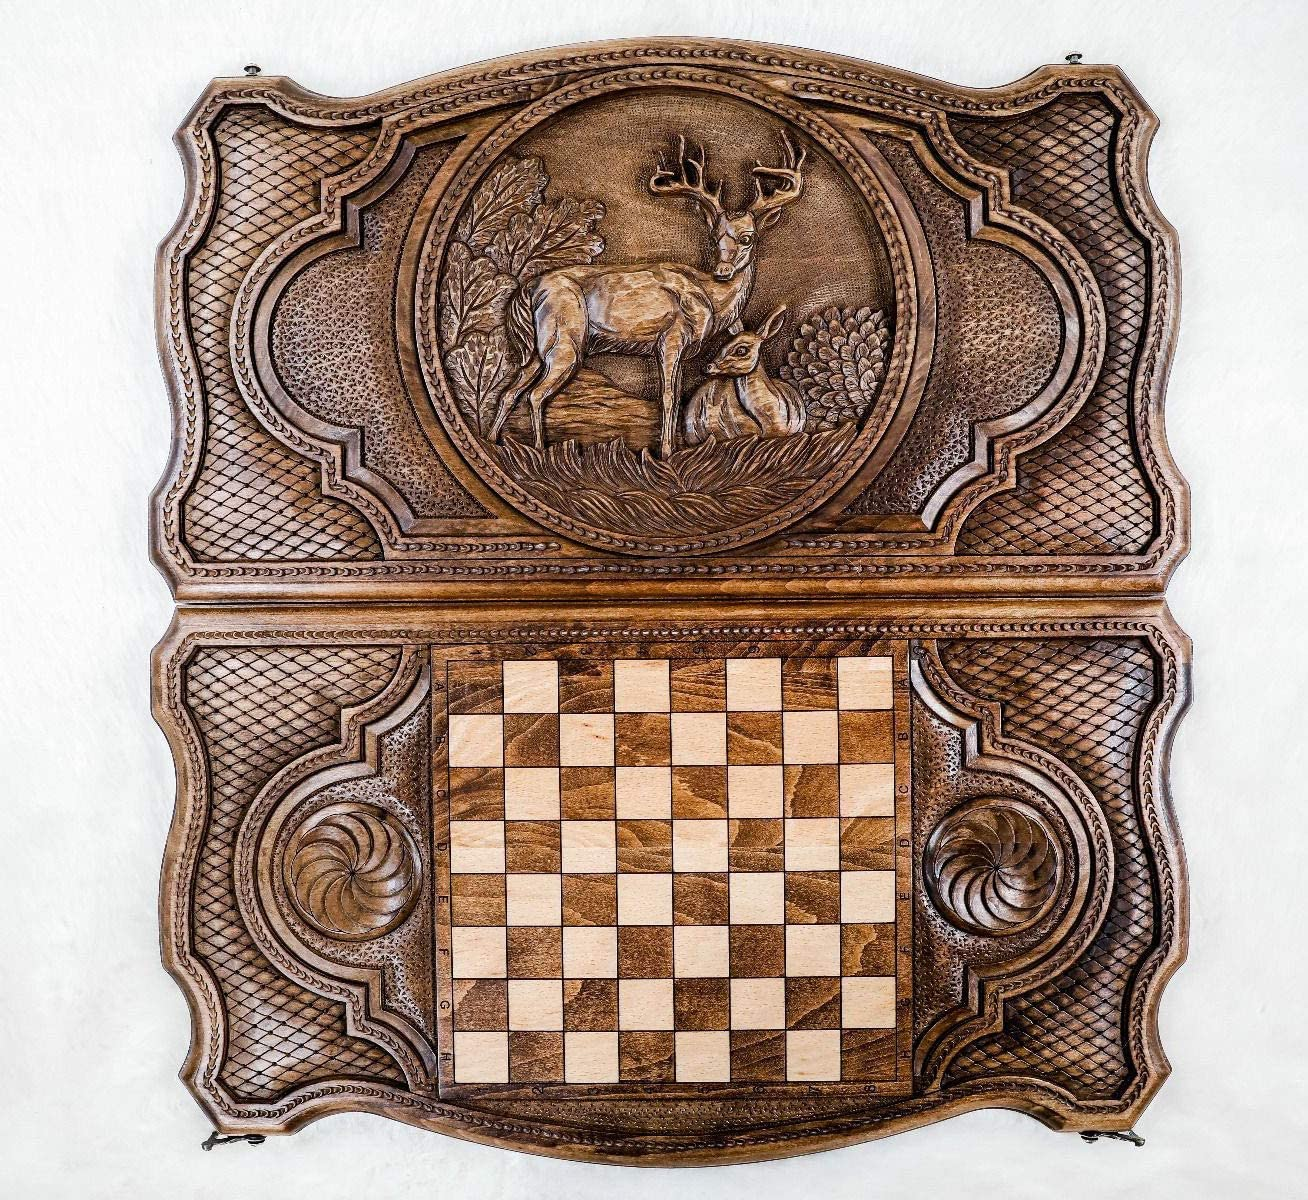 Nardy READY TO SHIP Armenian Handmade Backgammon Peter the Great Gift for him Set Board Game Hand carved from Natural Walnut Wood